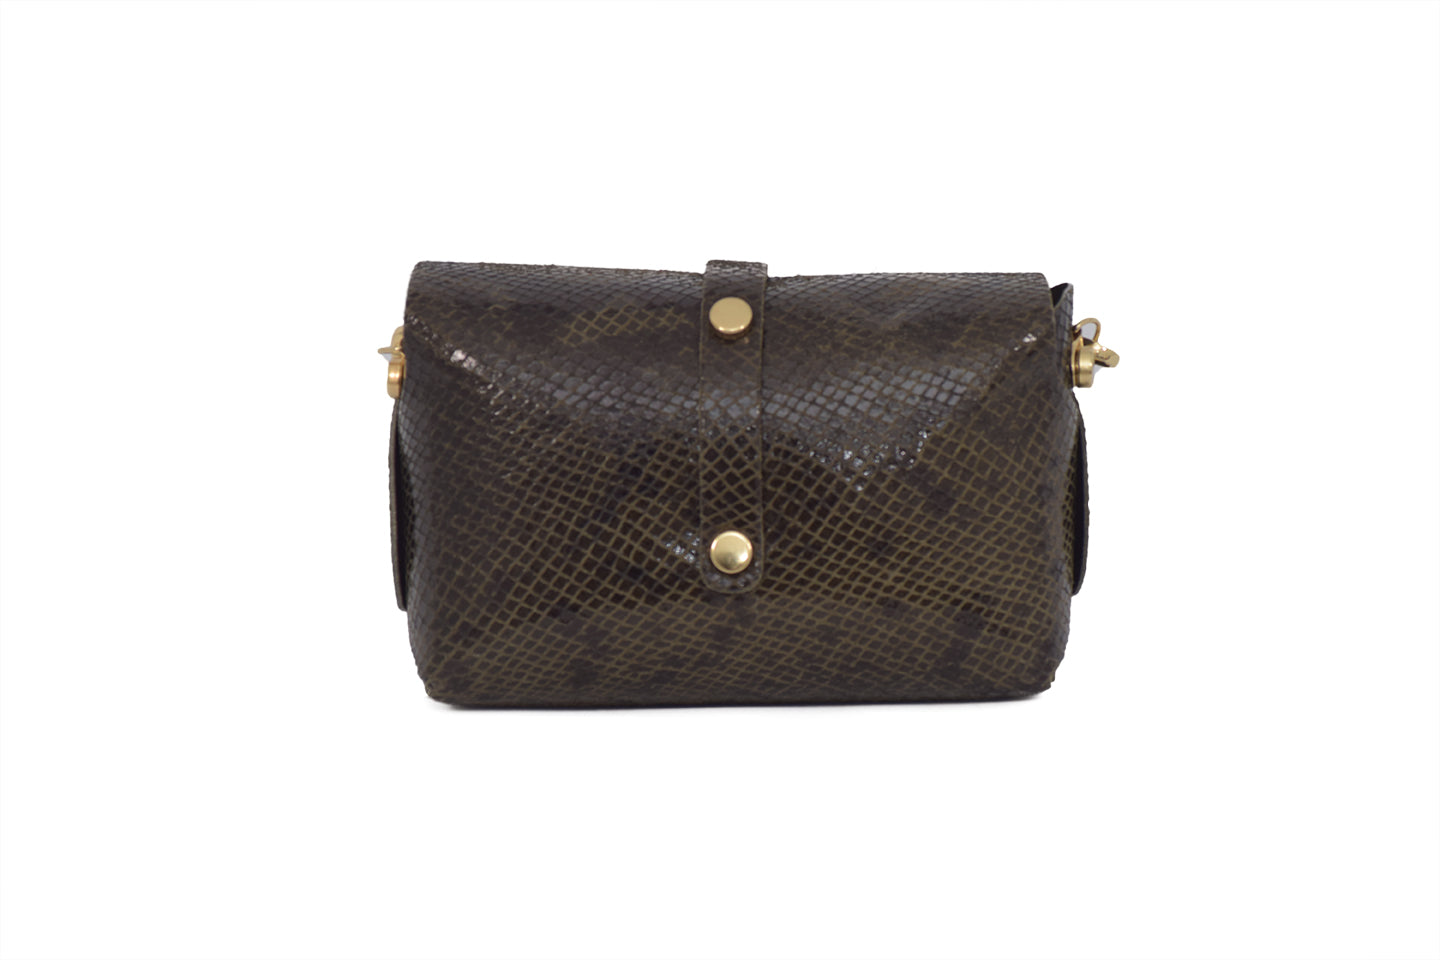 Brown Snake Patterned leather evening clutch bag with detachable gold chain strap